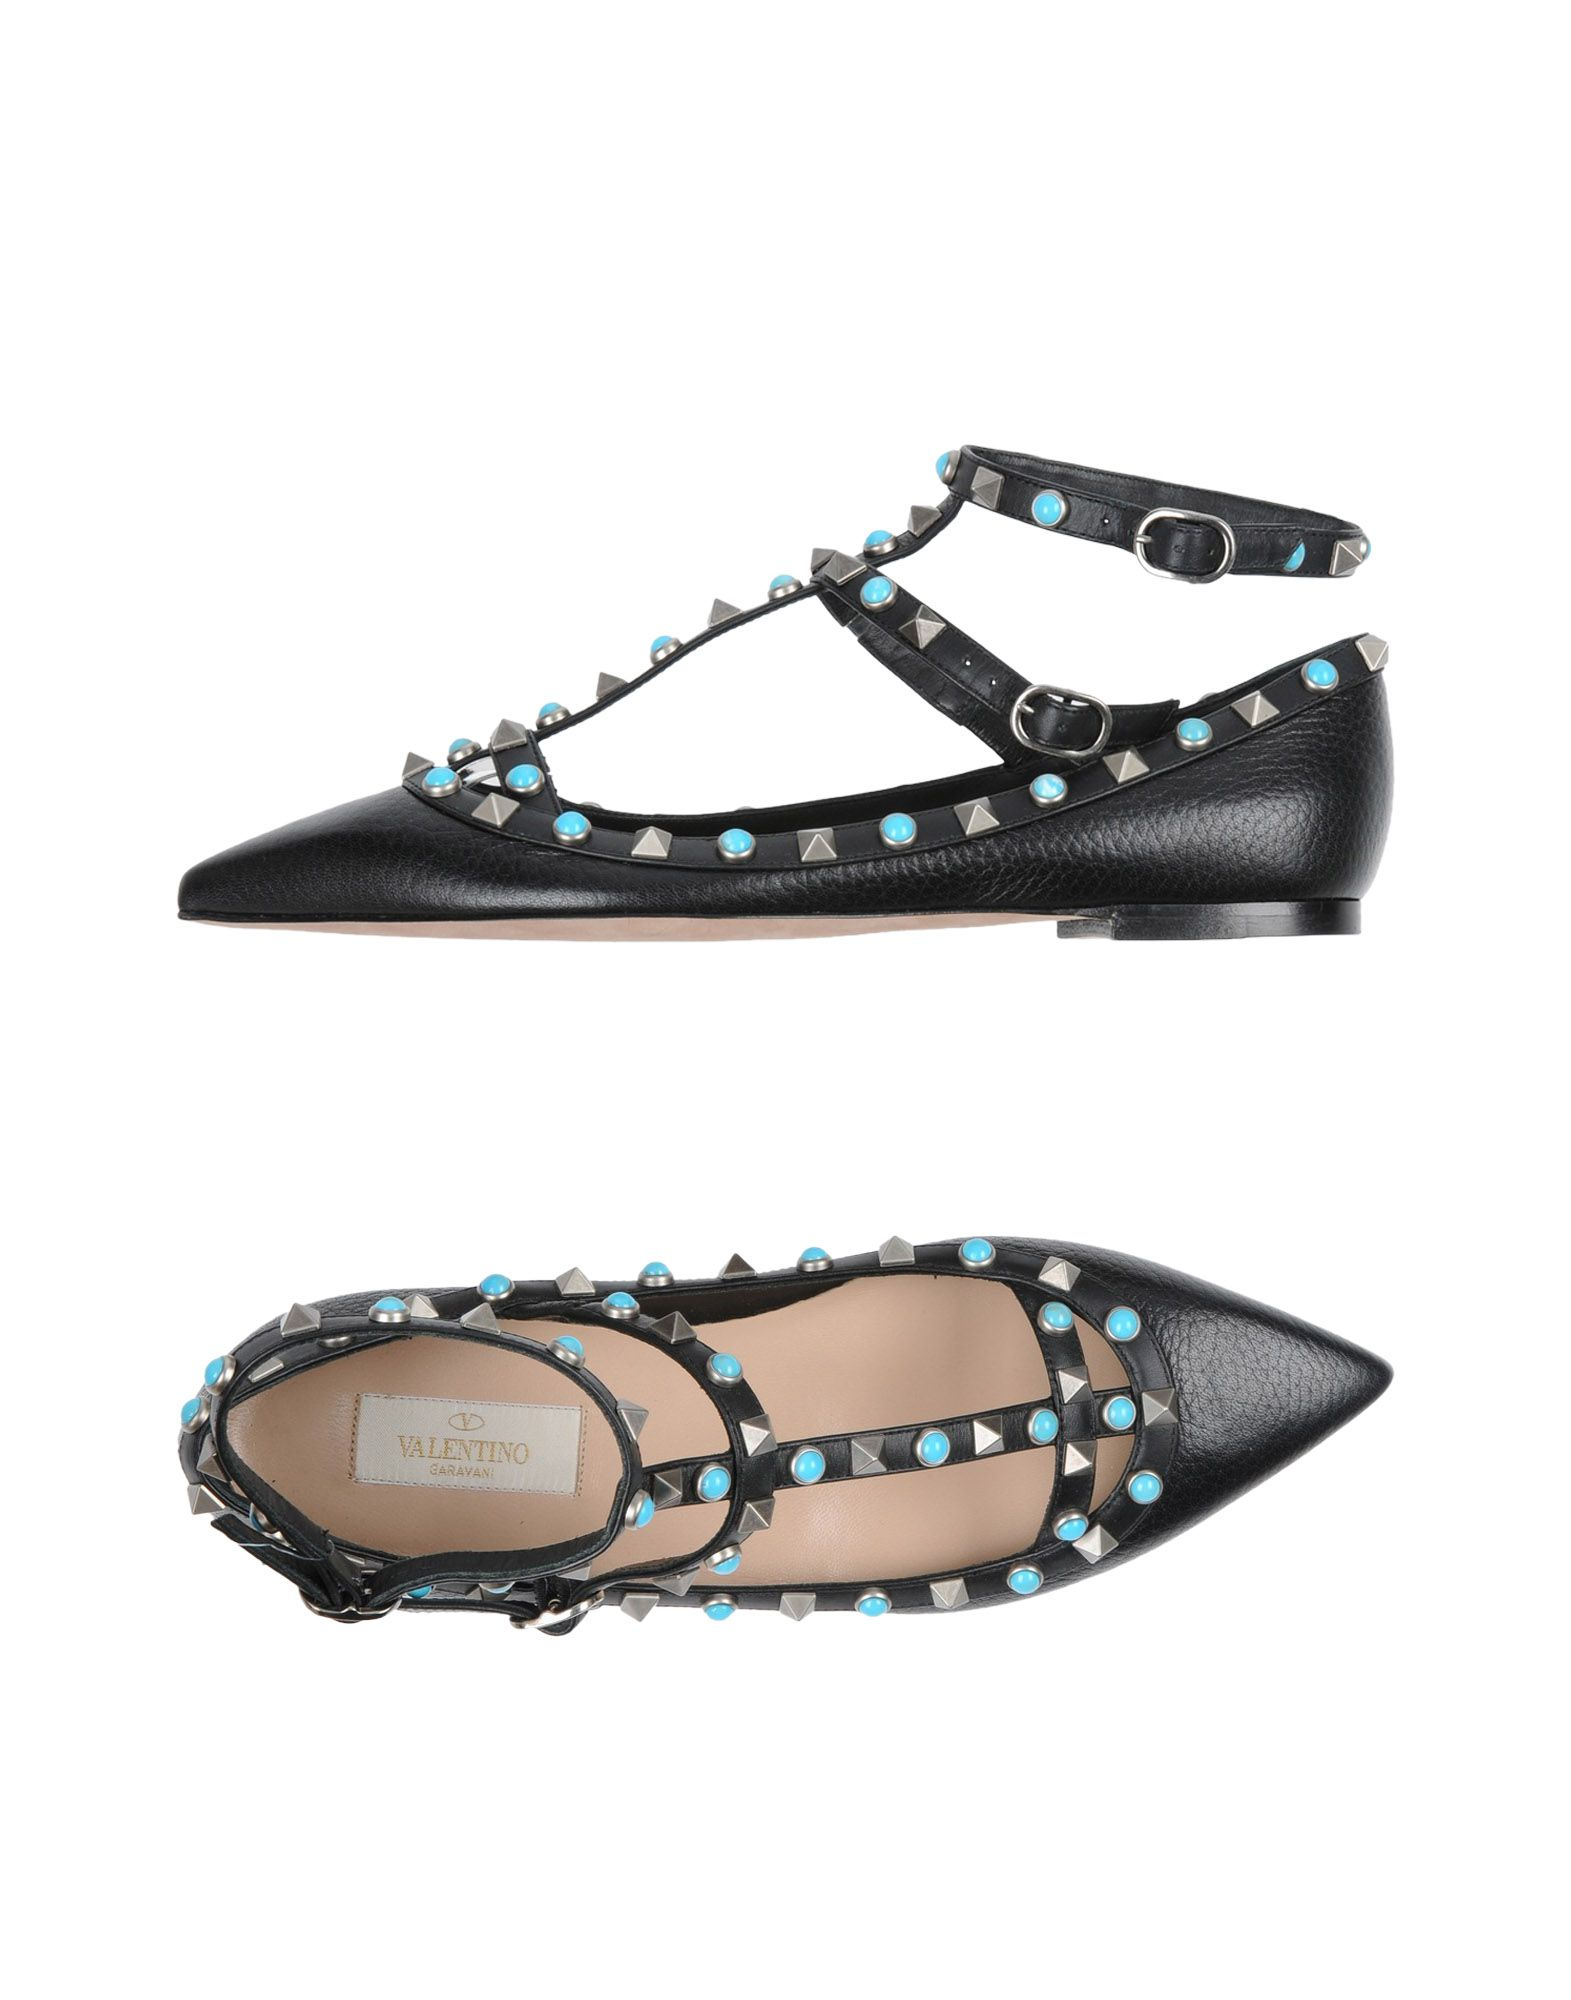 Louboutin presented sneakers in rhinestones and ballet flats for any skin color